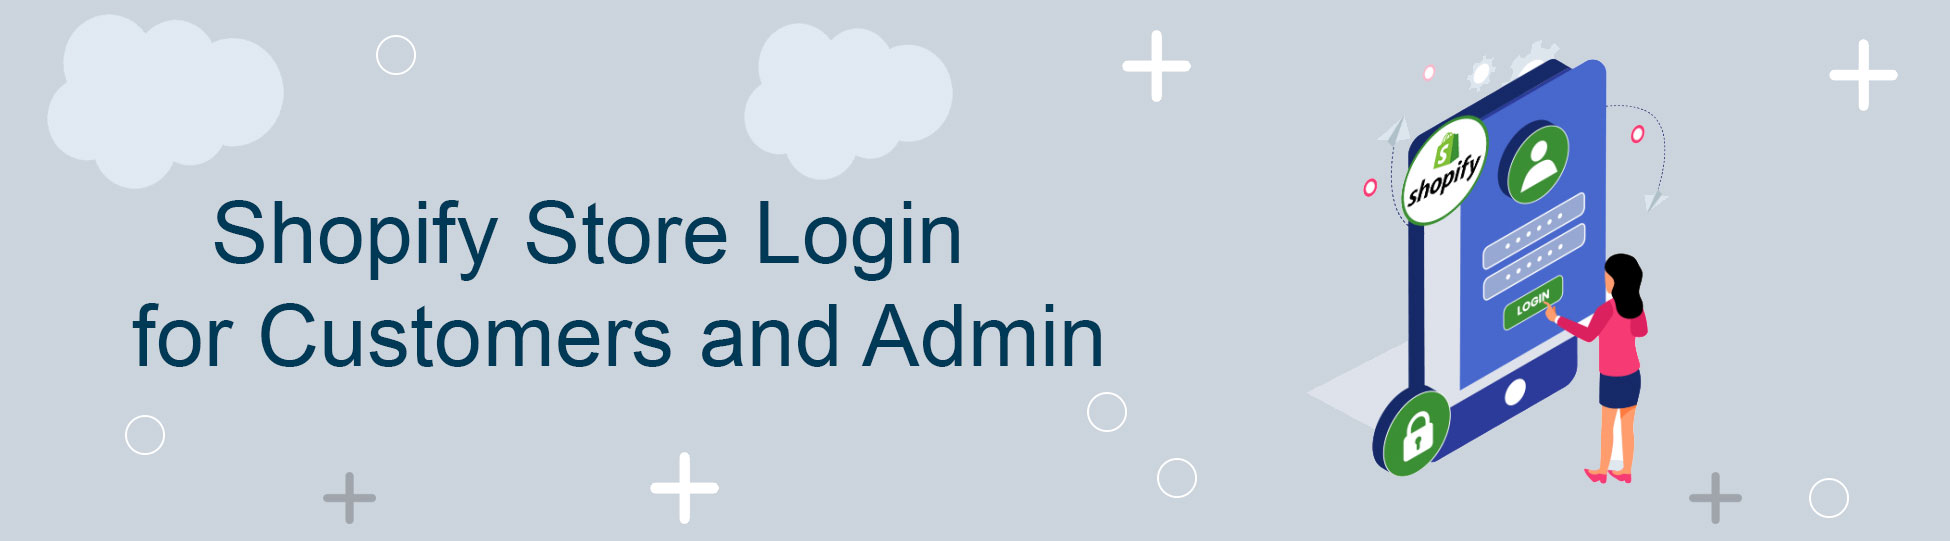 Shopify Store Login for Customers and Admin